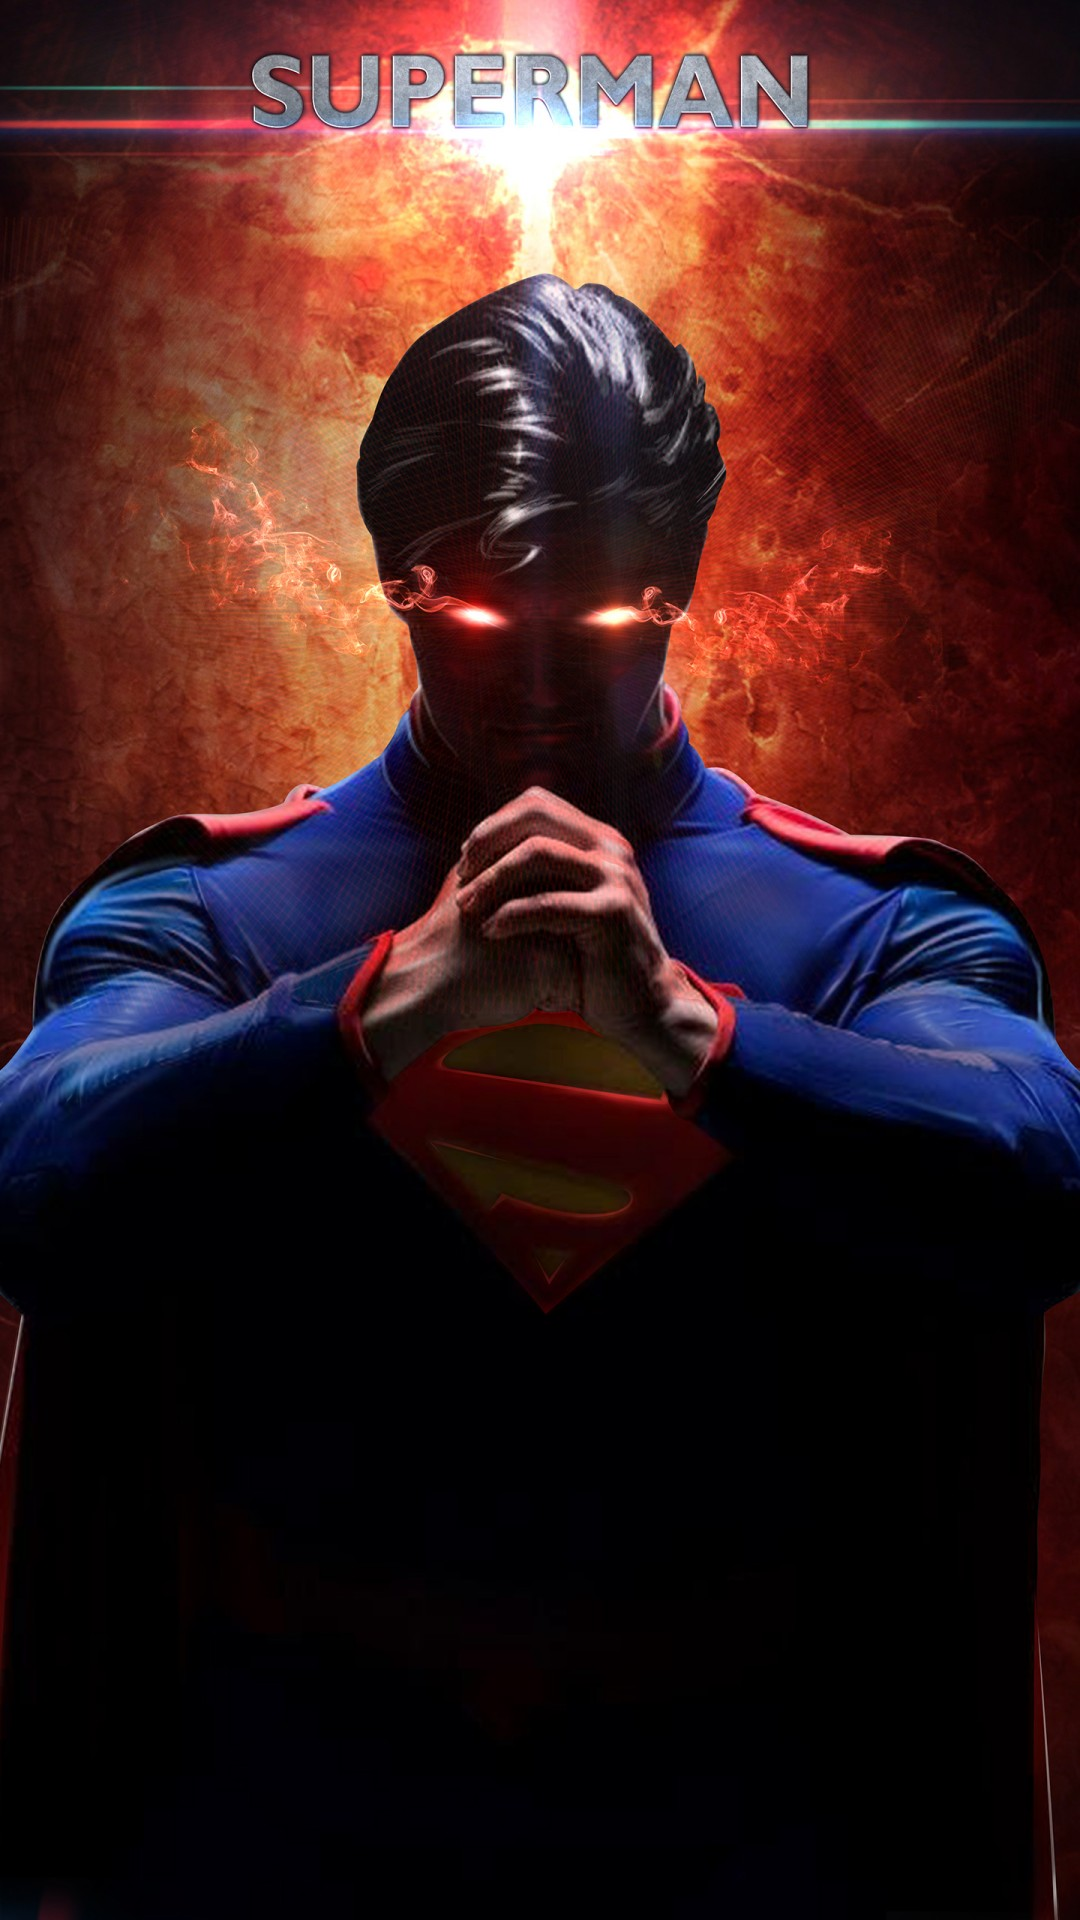 Most Popular Wallpaper For Iphone 6 Superman With Laser Eyes 4k Wallpapers Hd Wallpapers